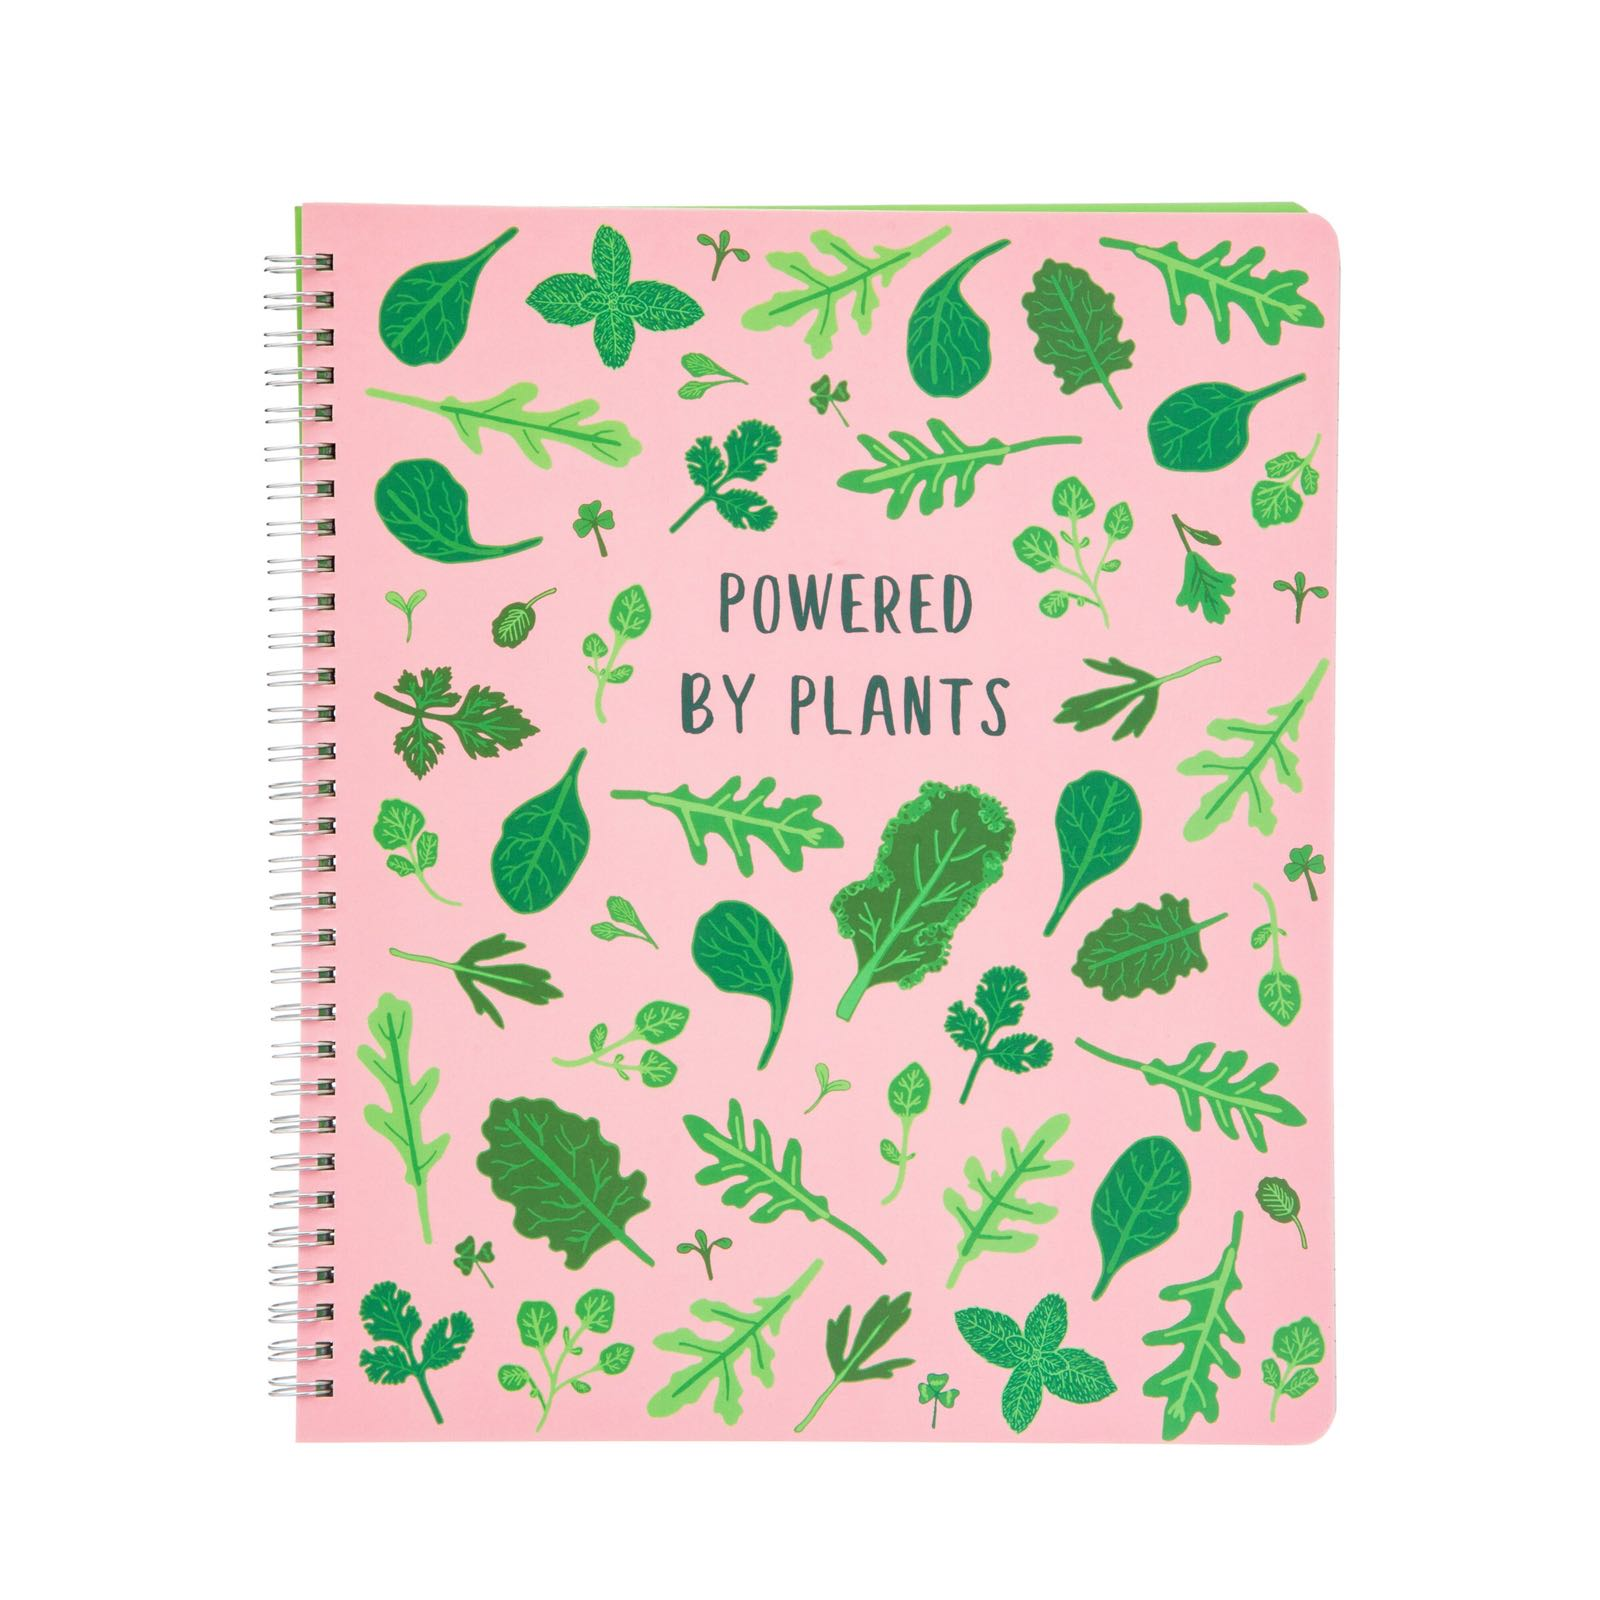 Powered By Plants A4 Notebook (Was £9.50)